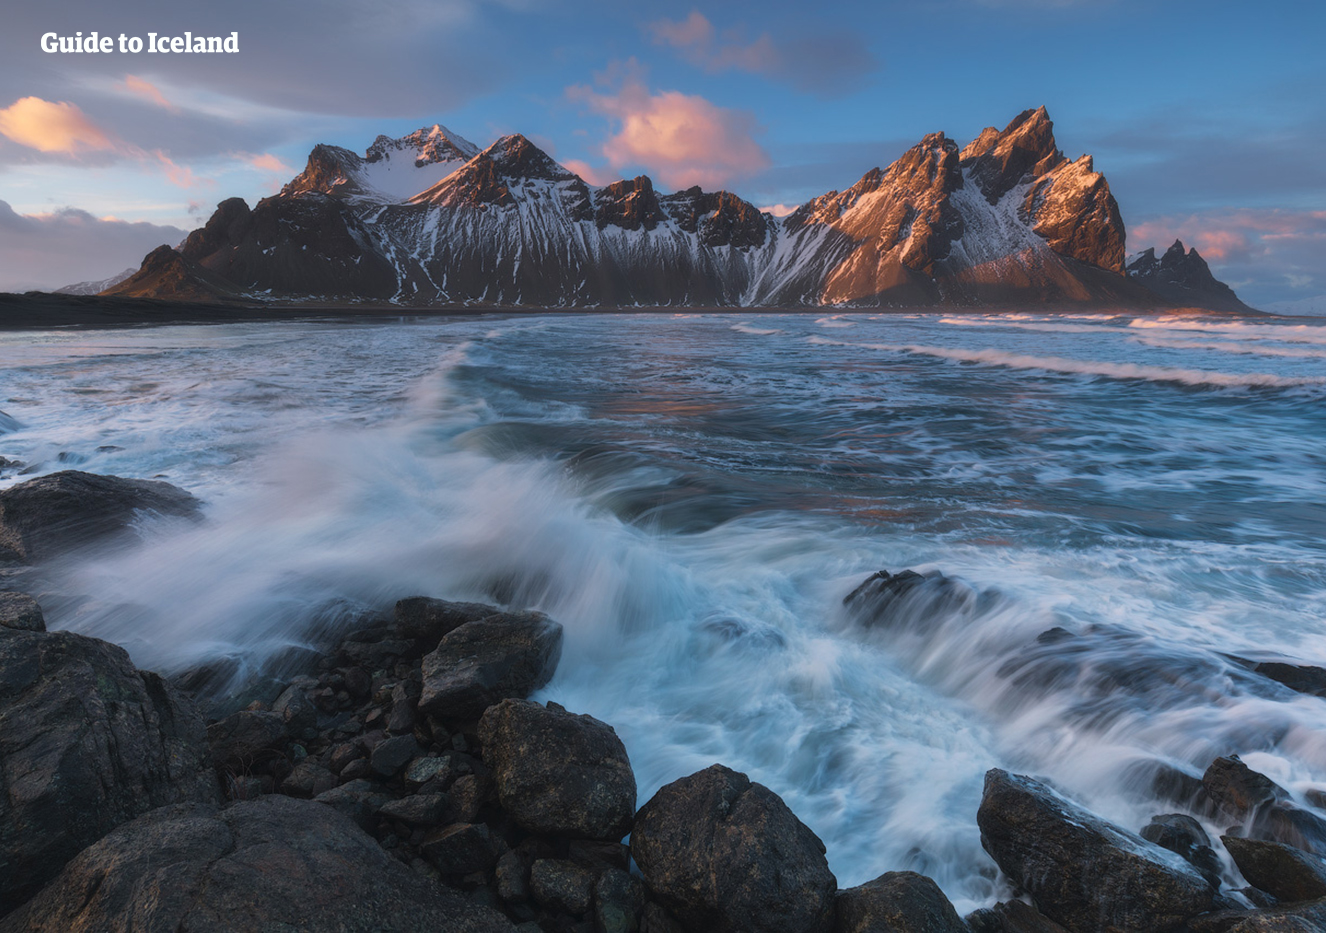 The East Fjords contains some of the most dramatic scenery available in Iceland.